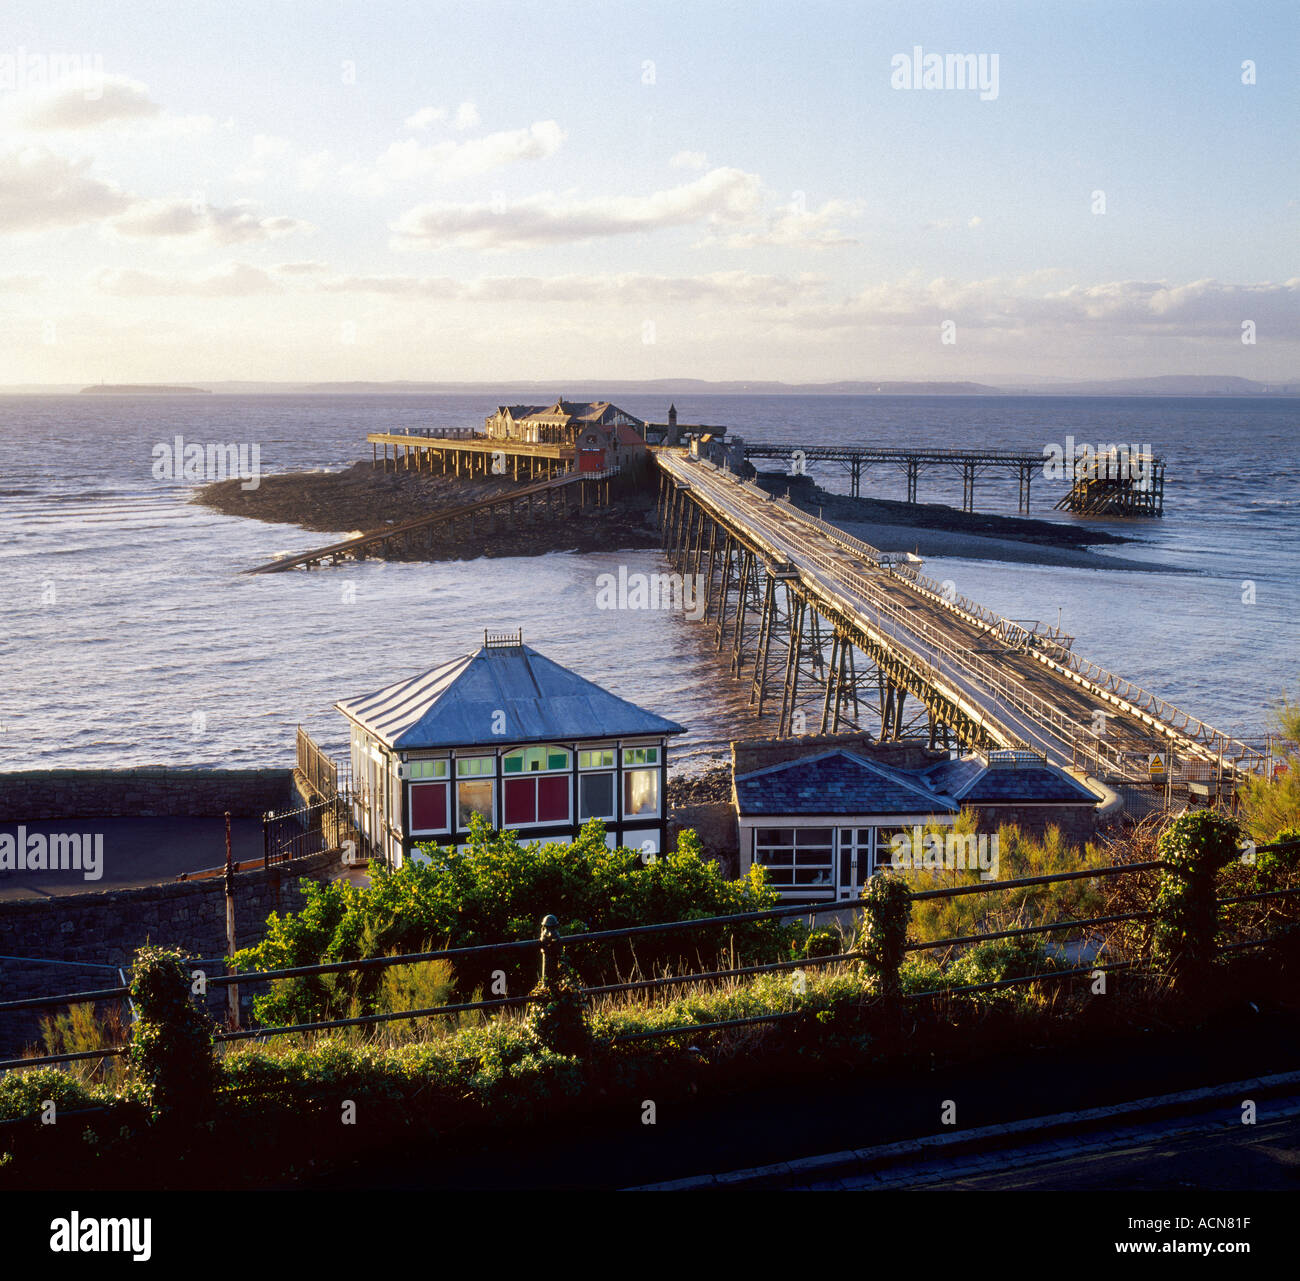 Birnbeck Pier [Weston super Mare] - Stock Image